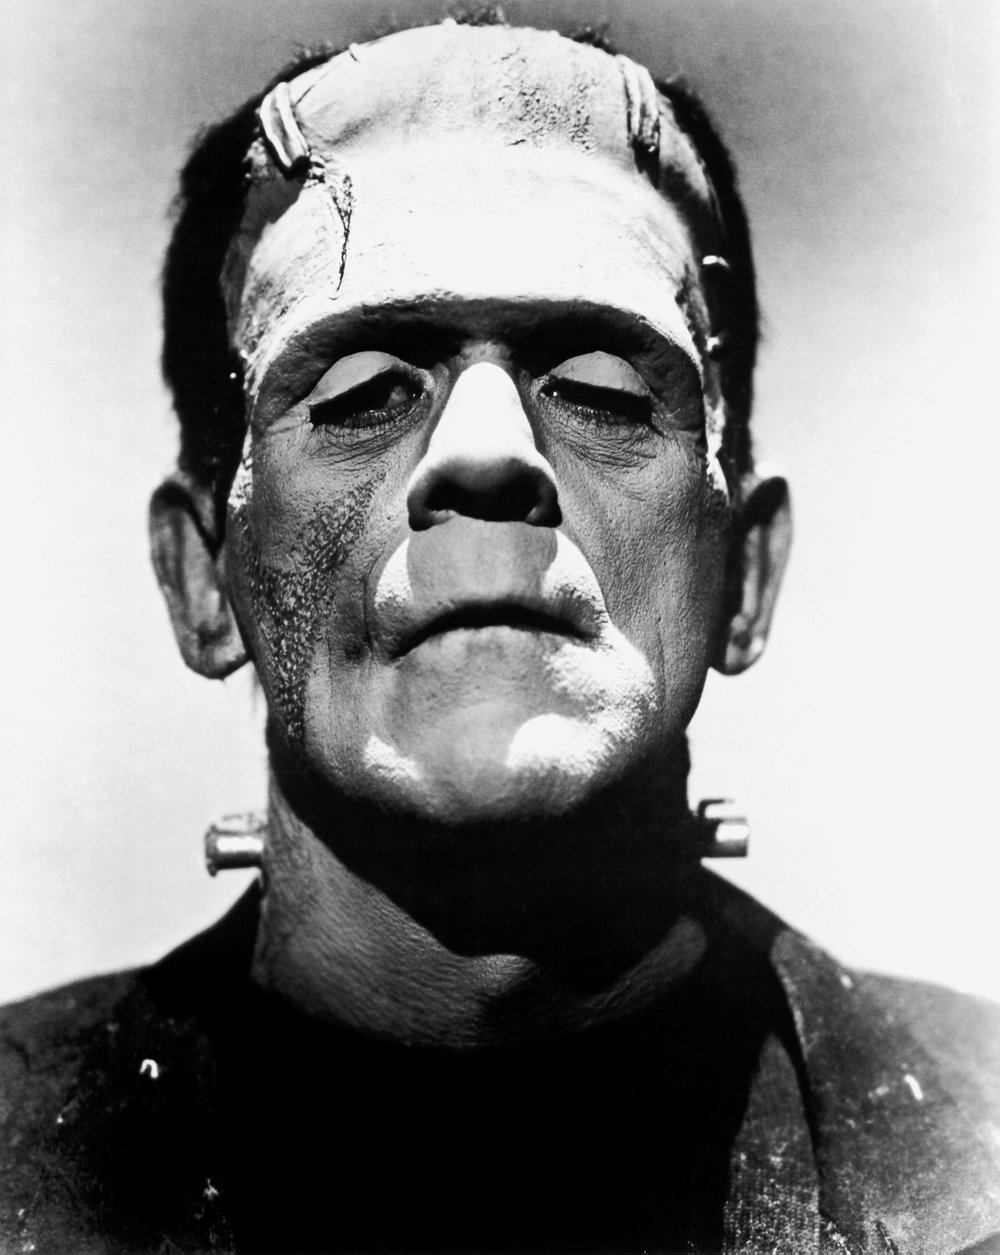 Frankenstein from the 1931.